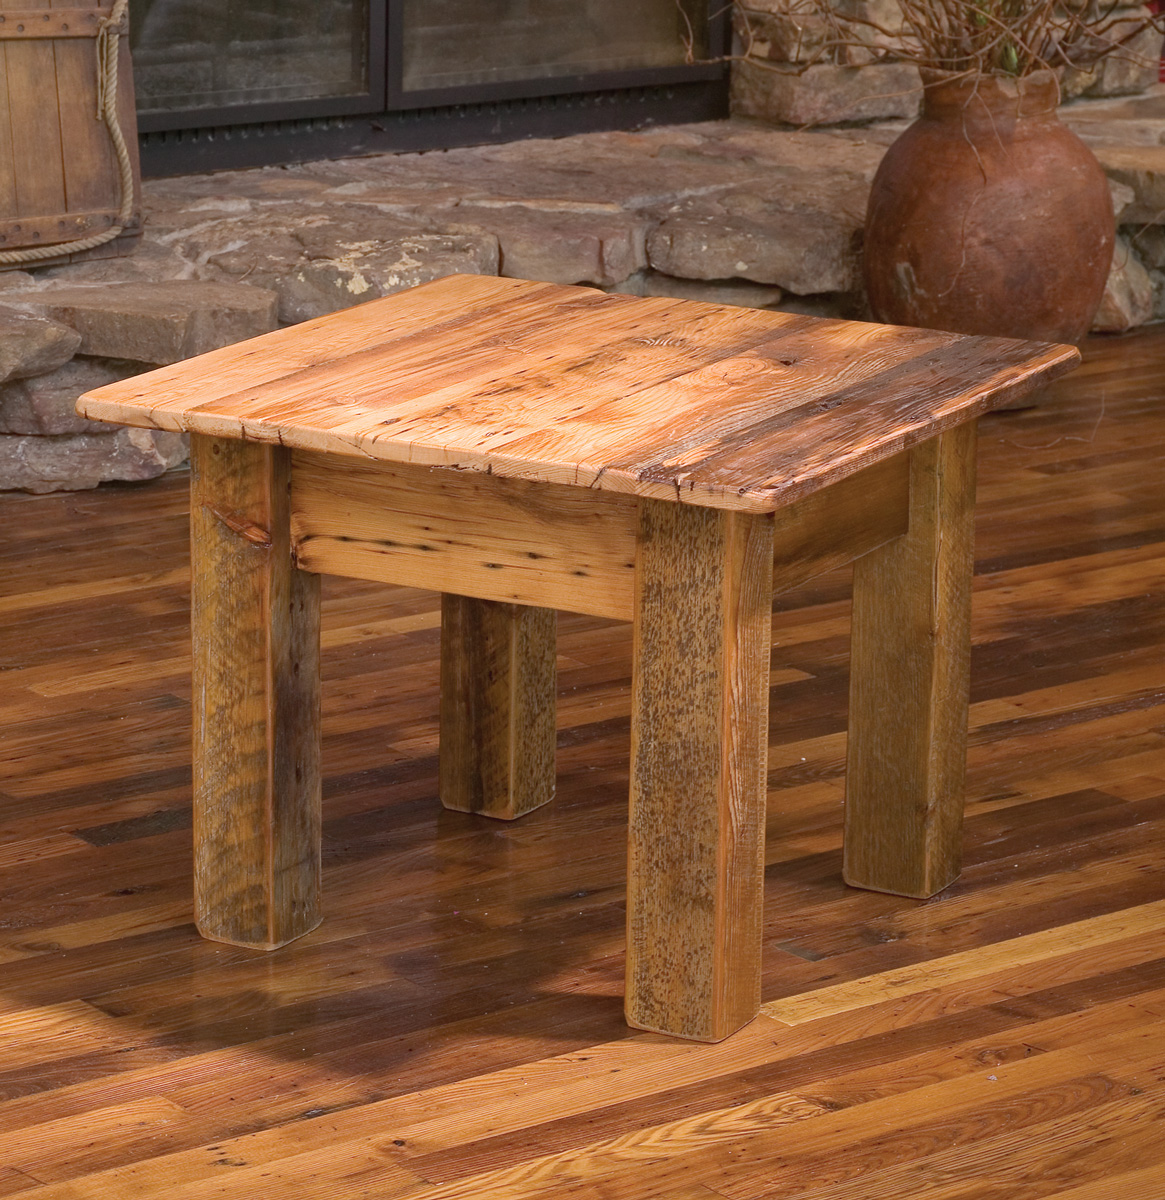 Reclaimed Barn Wood Furniture | Rustic Furniture Mall by ...